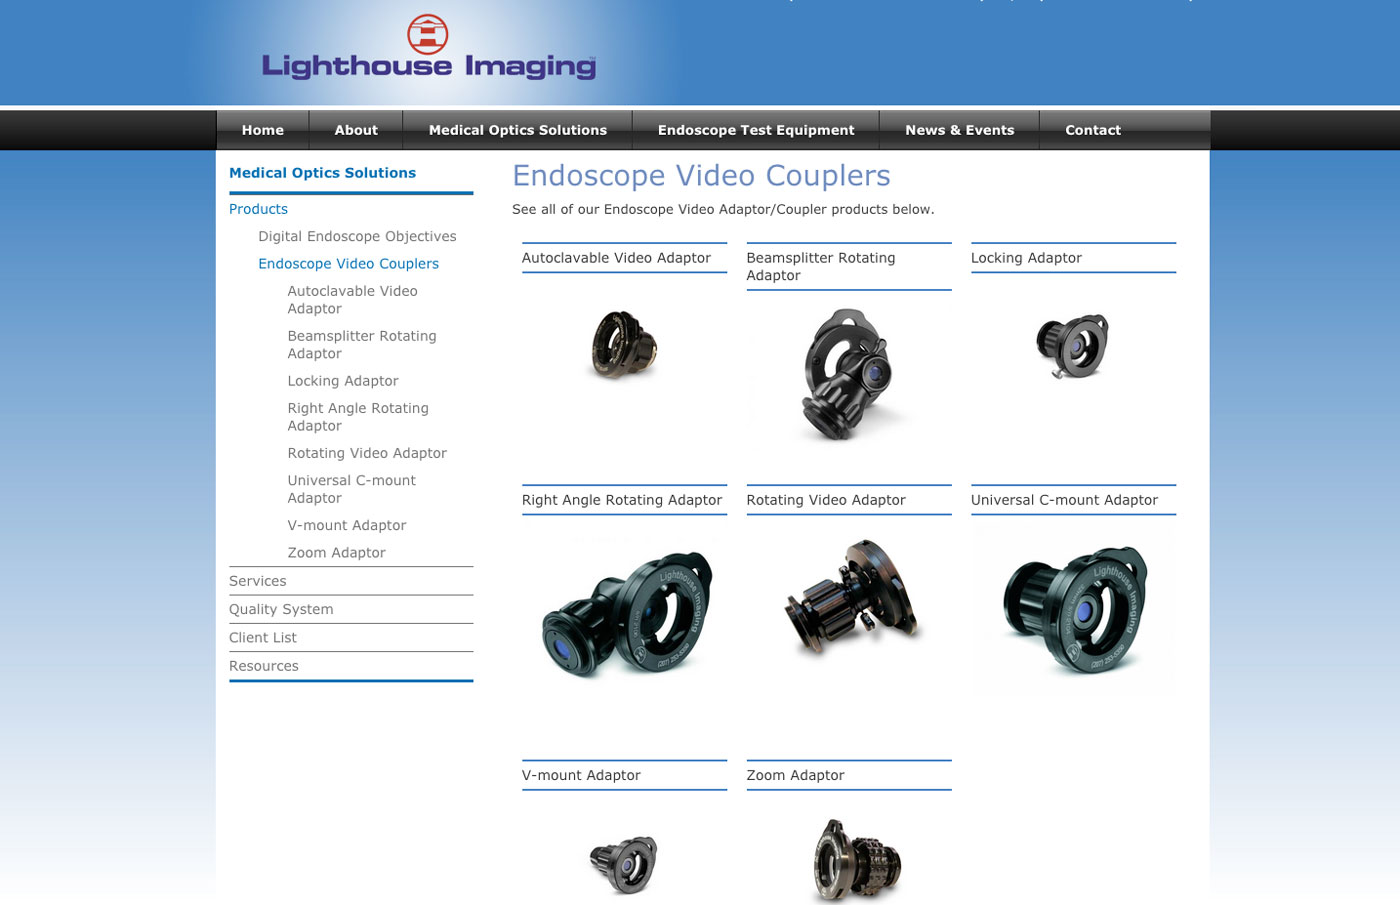 Endoscope Video Couplers